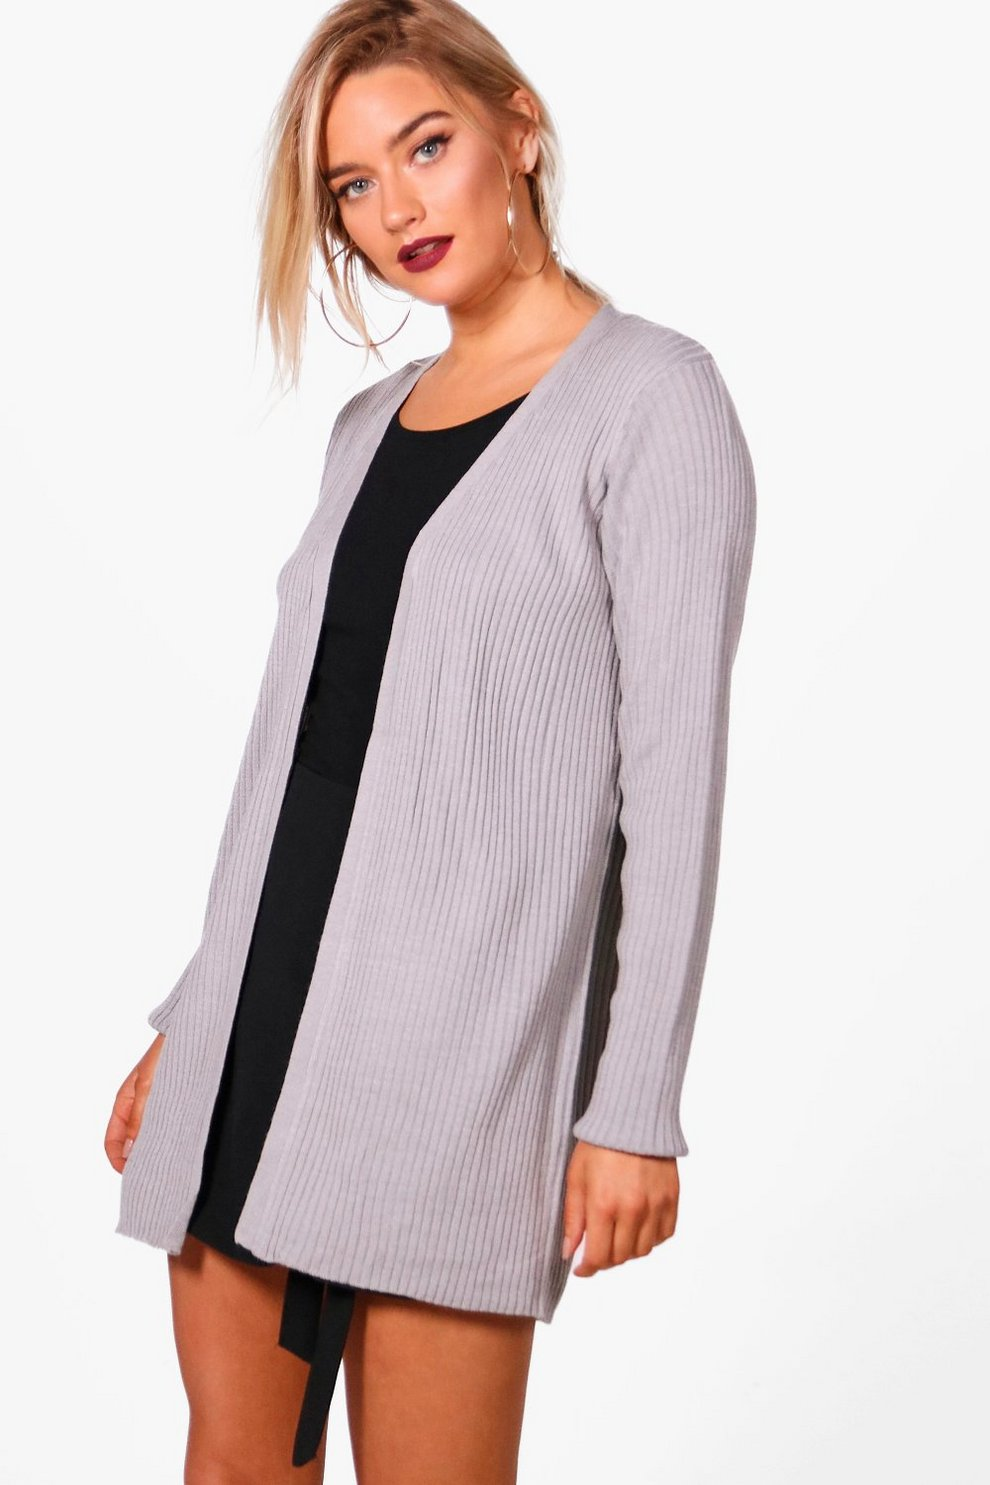 Ribbed Edge To Edge Cardigan  48dc992b7